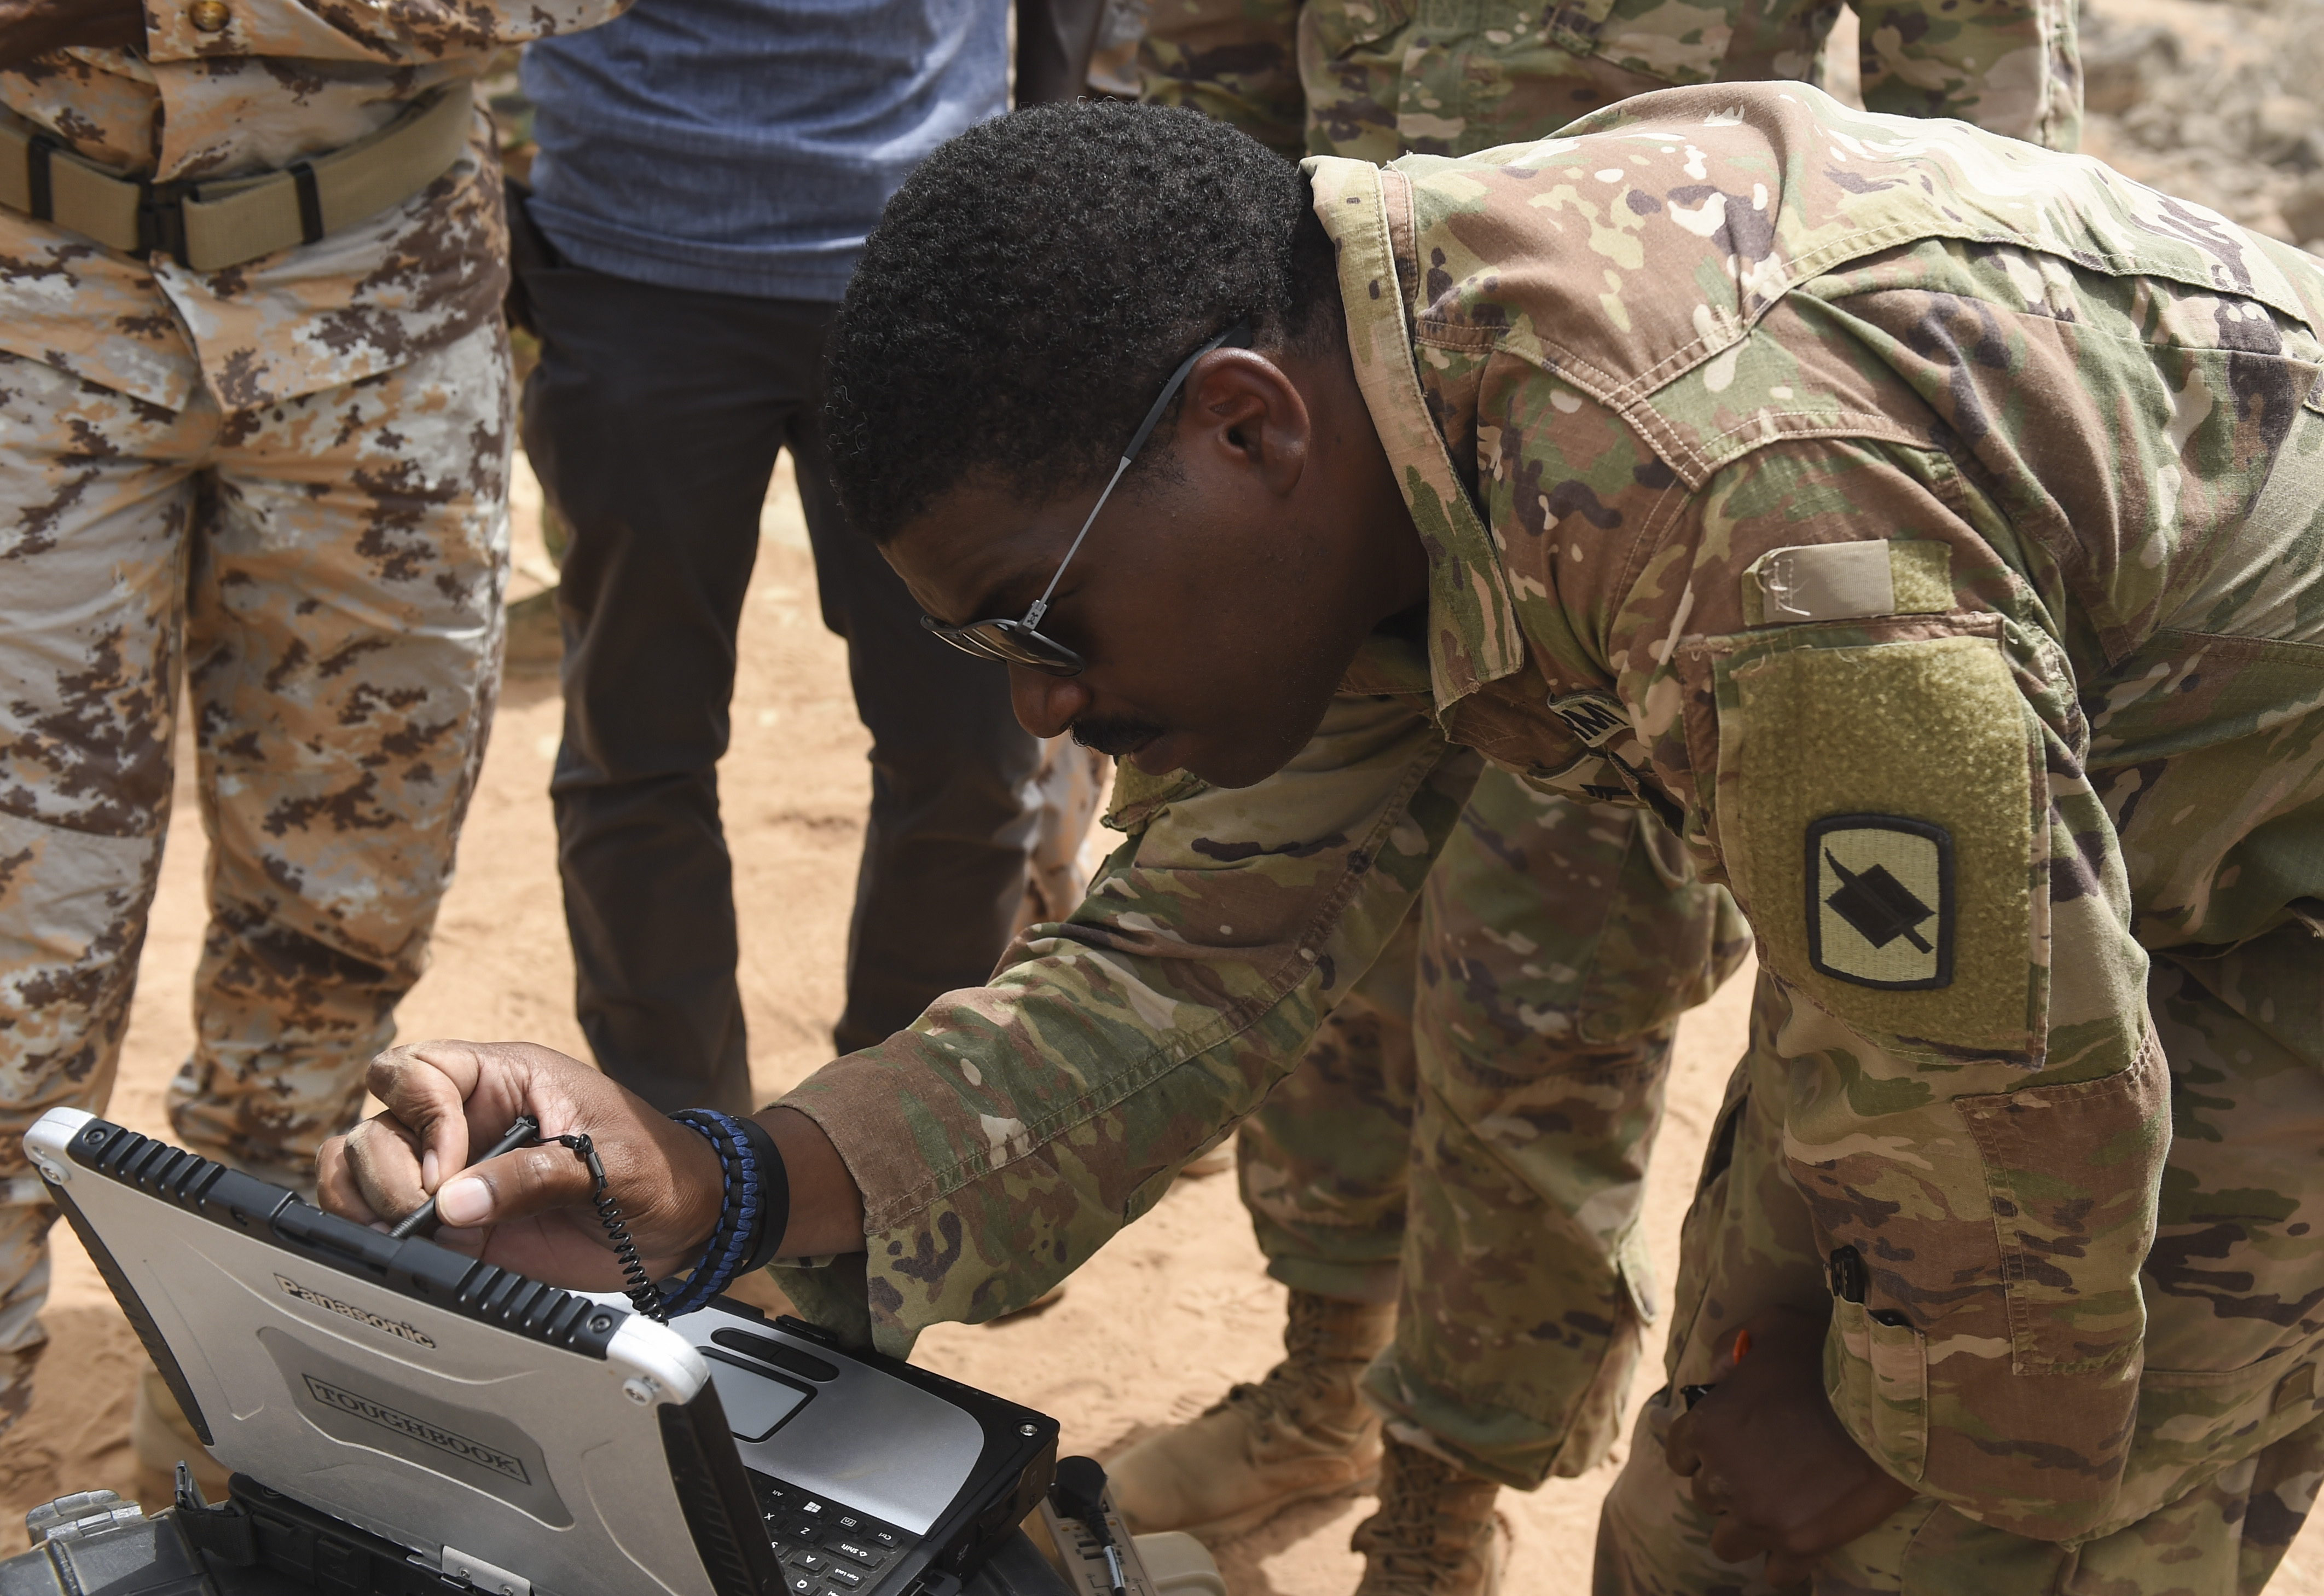 U.S. Army Sgt. Michael Martin, assigned to the 1st Battalion, 153rd Infantry Regiment, Task Force Warrior, an associated unit of Combined Joint Task Force - Horn of Africa, demonstrates the use of a ground control station in an airfield in southern Djibouti, Aug. 21, 2017. The demonstration provided an opportunity to familiarize Djibouti Armed Forces members with the unmanned aerial vehicle system, clear up confusion about the RQ-11 Raven and other remotely piloted aircraft, and show the safe operation of the Raven. (U.S. Air Force photo by Staff Sgt. Eboni Prince)